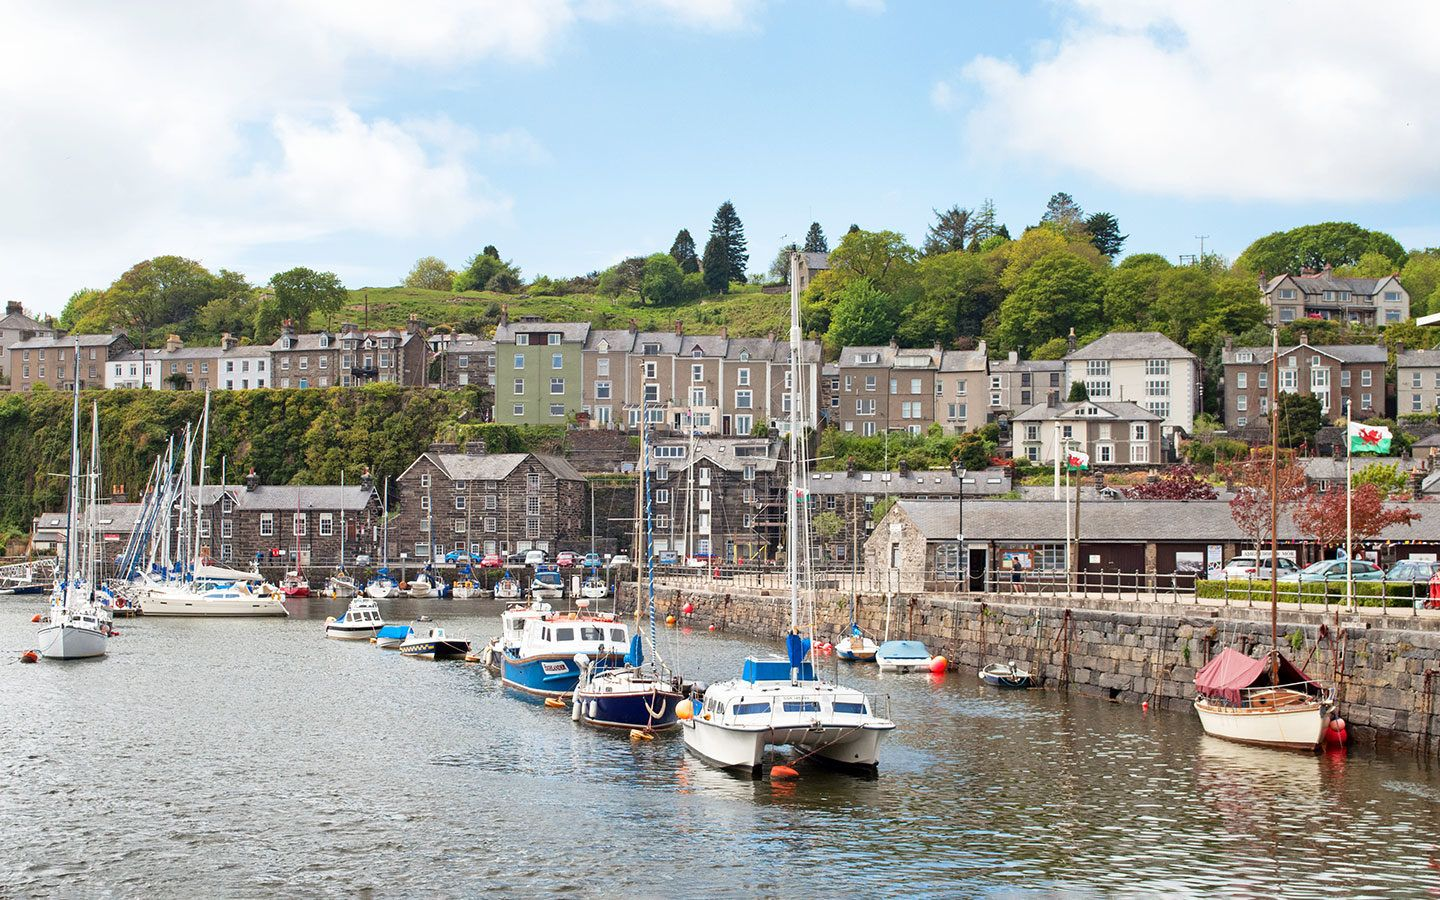 Boats in Porthmadog harbour in North Wales